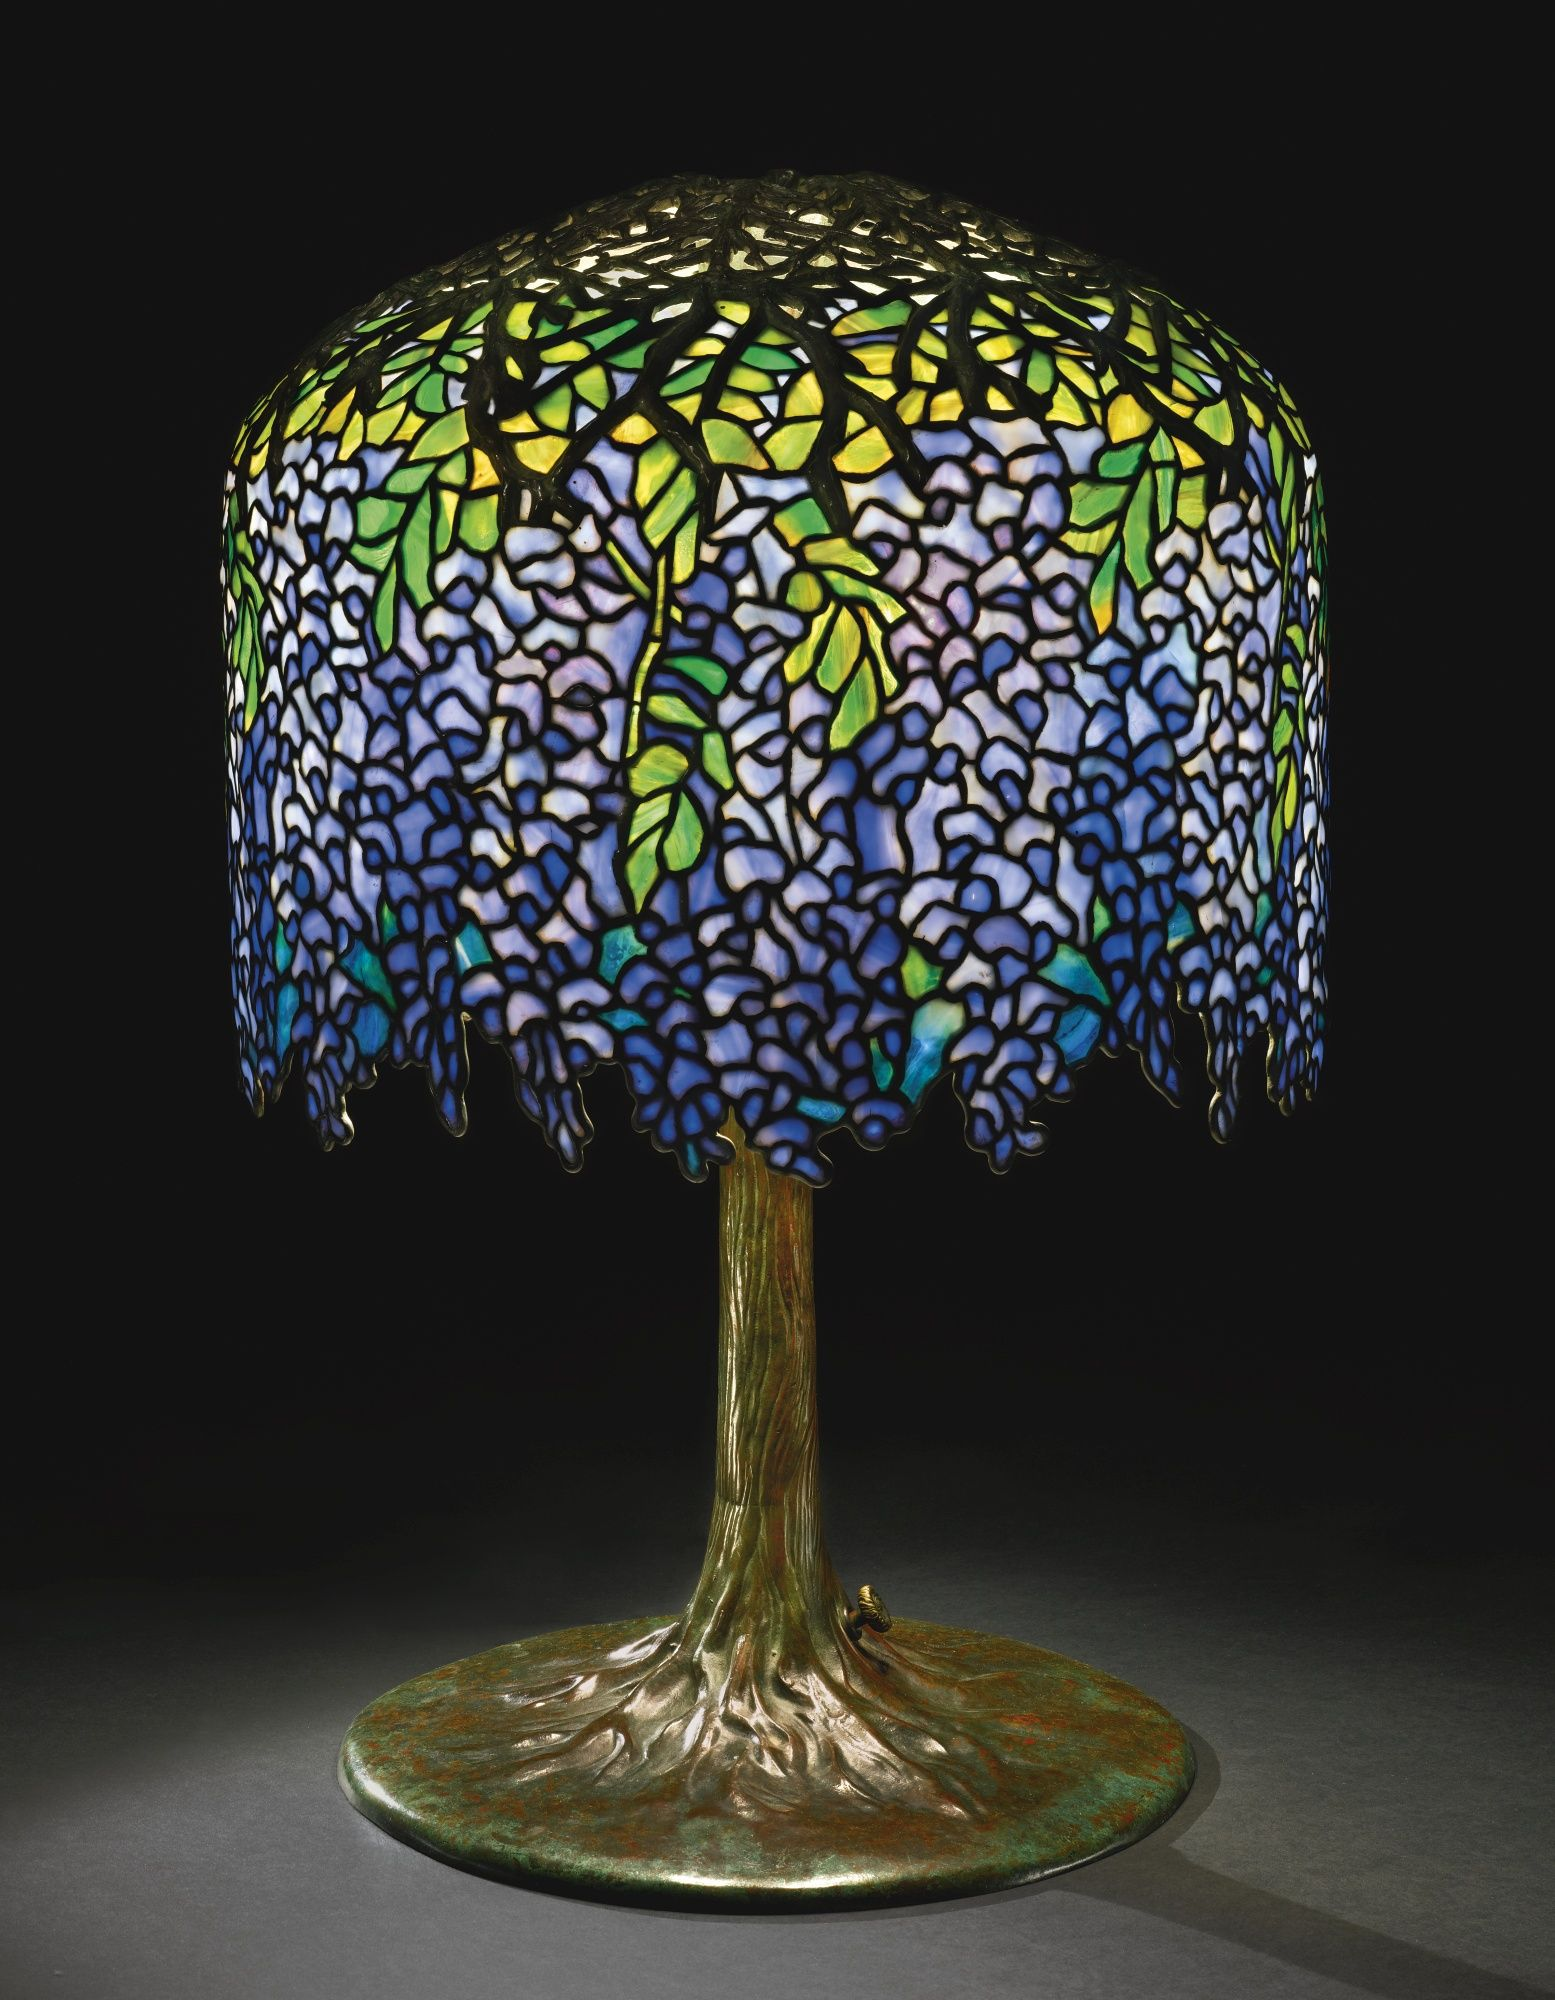 Wisteria table lamp shade with small early tag impressed tiffany wisteria table lamp shade with small early tag impressed tiffany studiosnew york leaded glass and patinated bronze 26 78 in 682 cm high 17 34 in aloadofball Choice Image